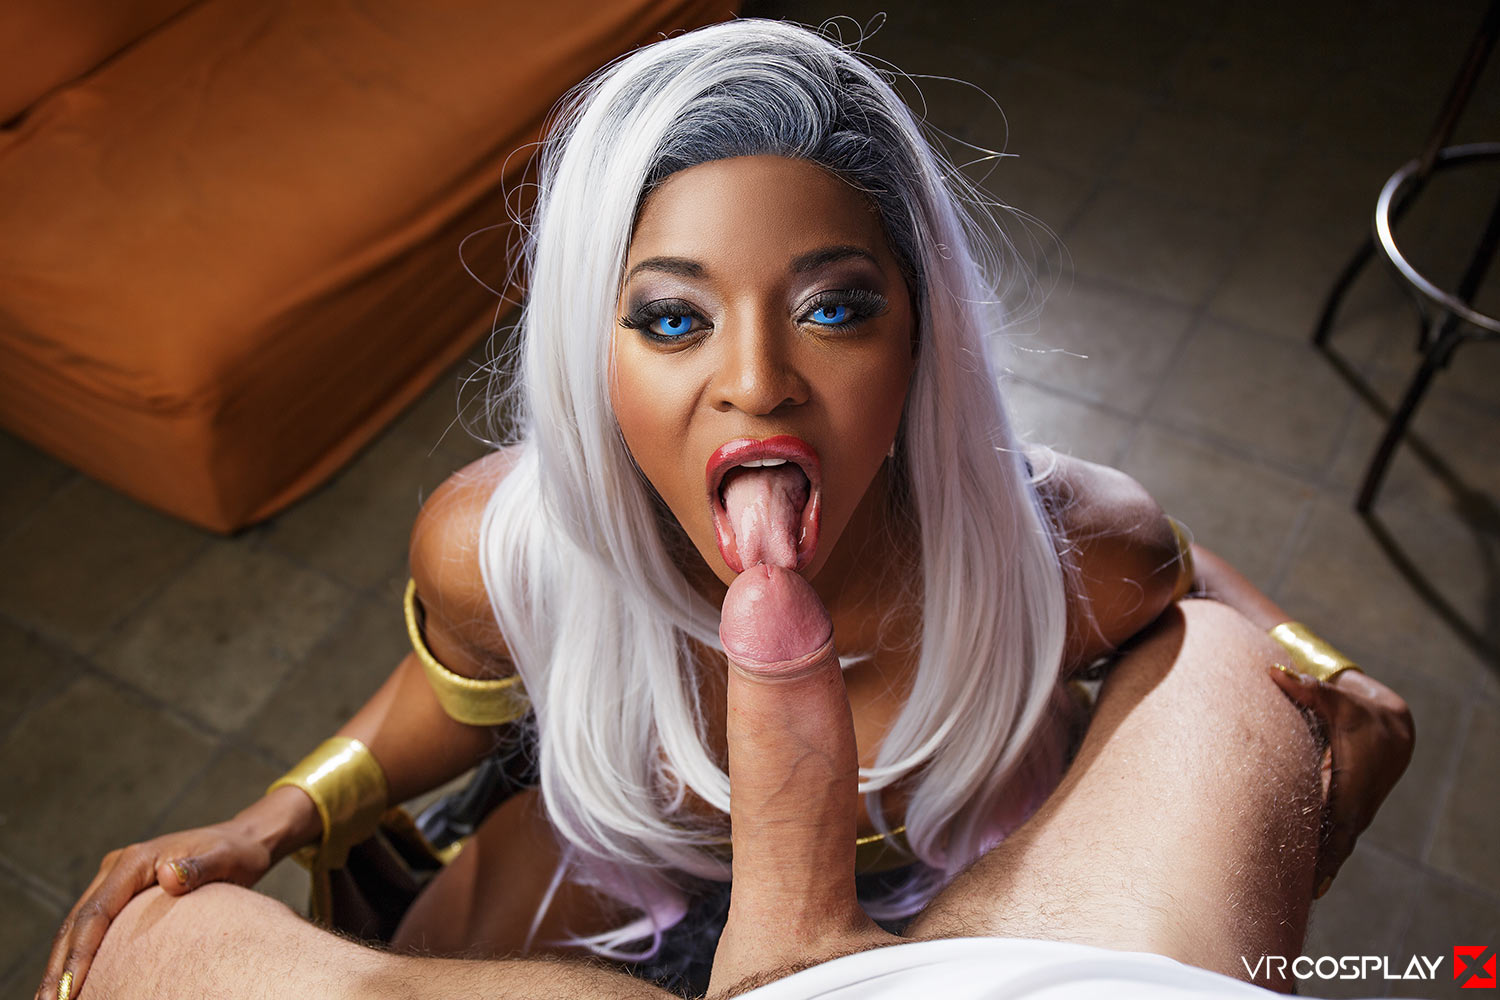 XXX-Men VR Porn Cosplay Storm Blowjob